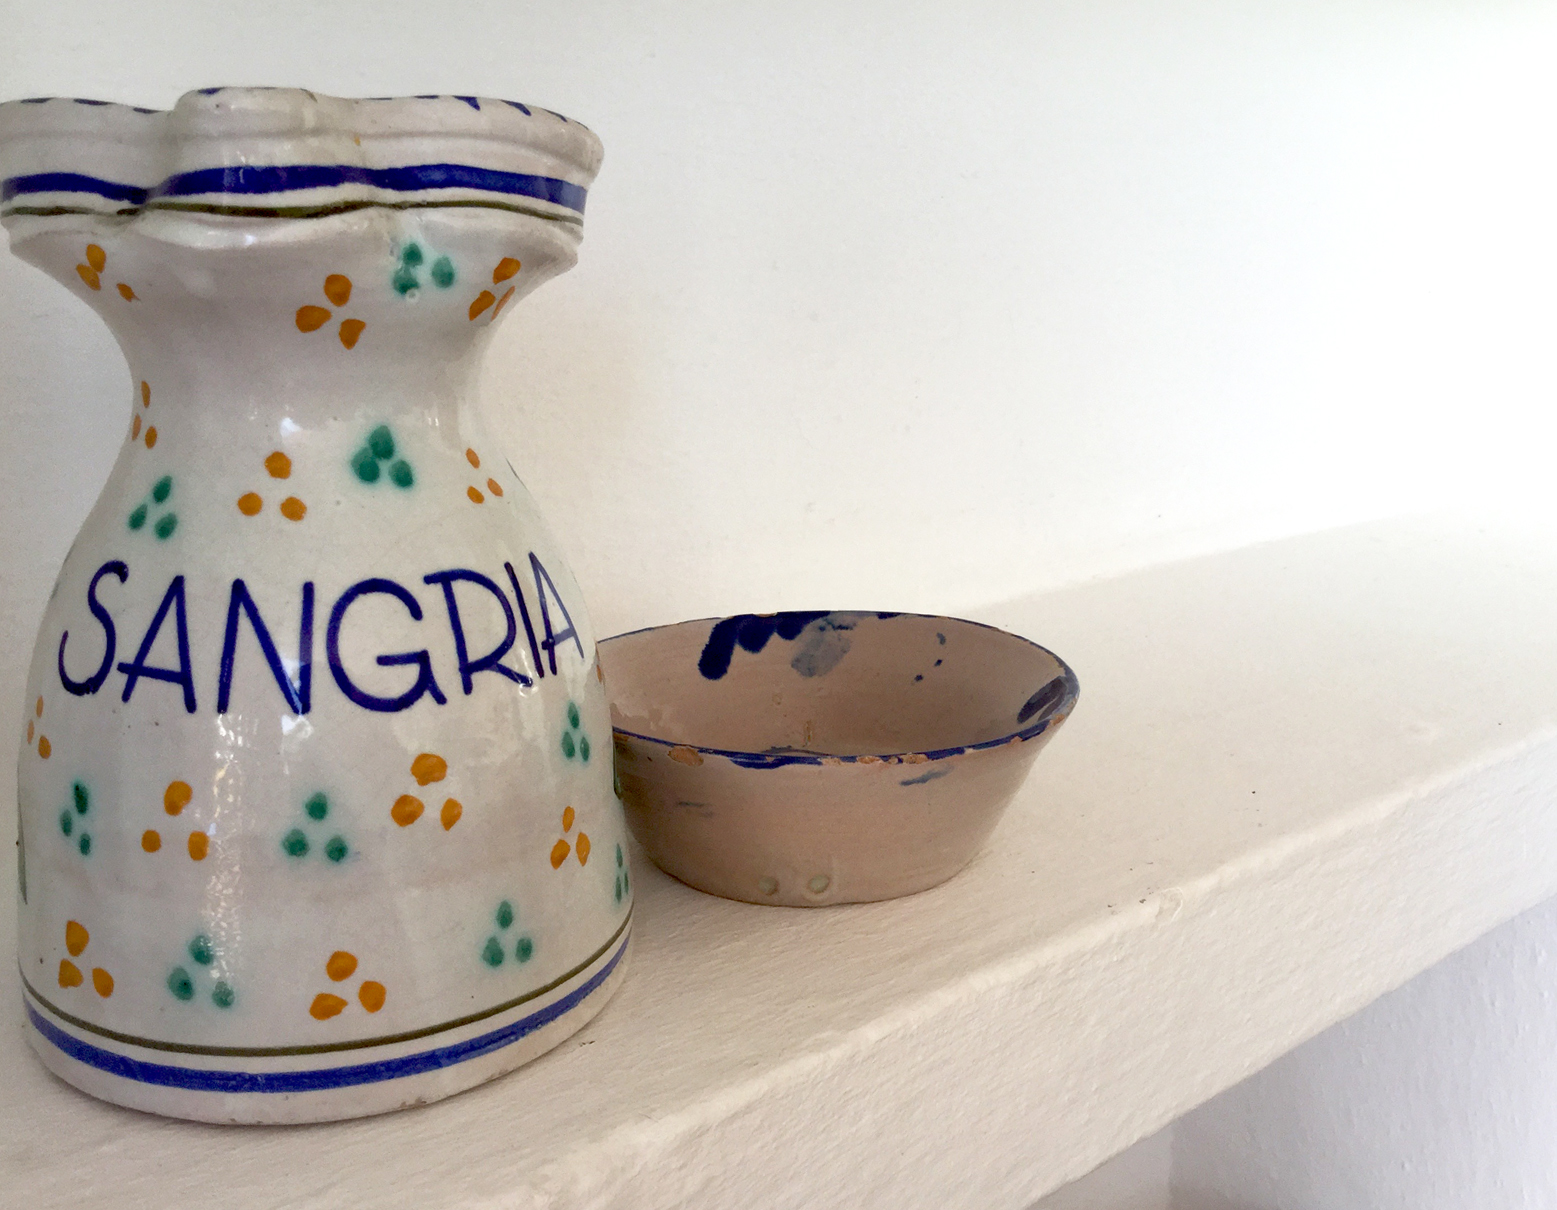 Pretty blue details on the sangria jug and bowl.